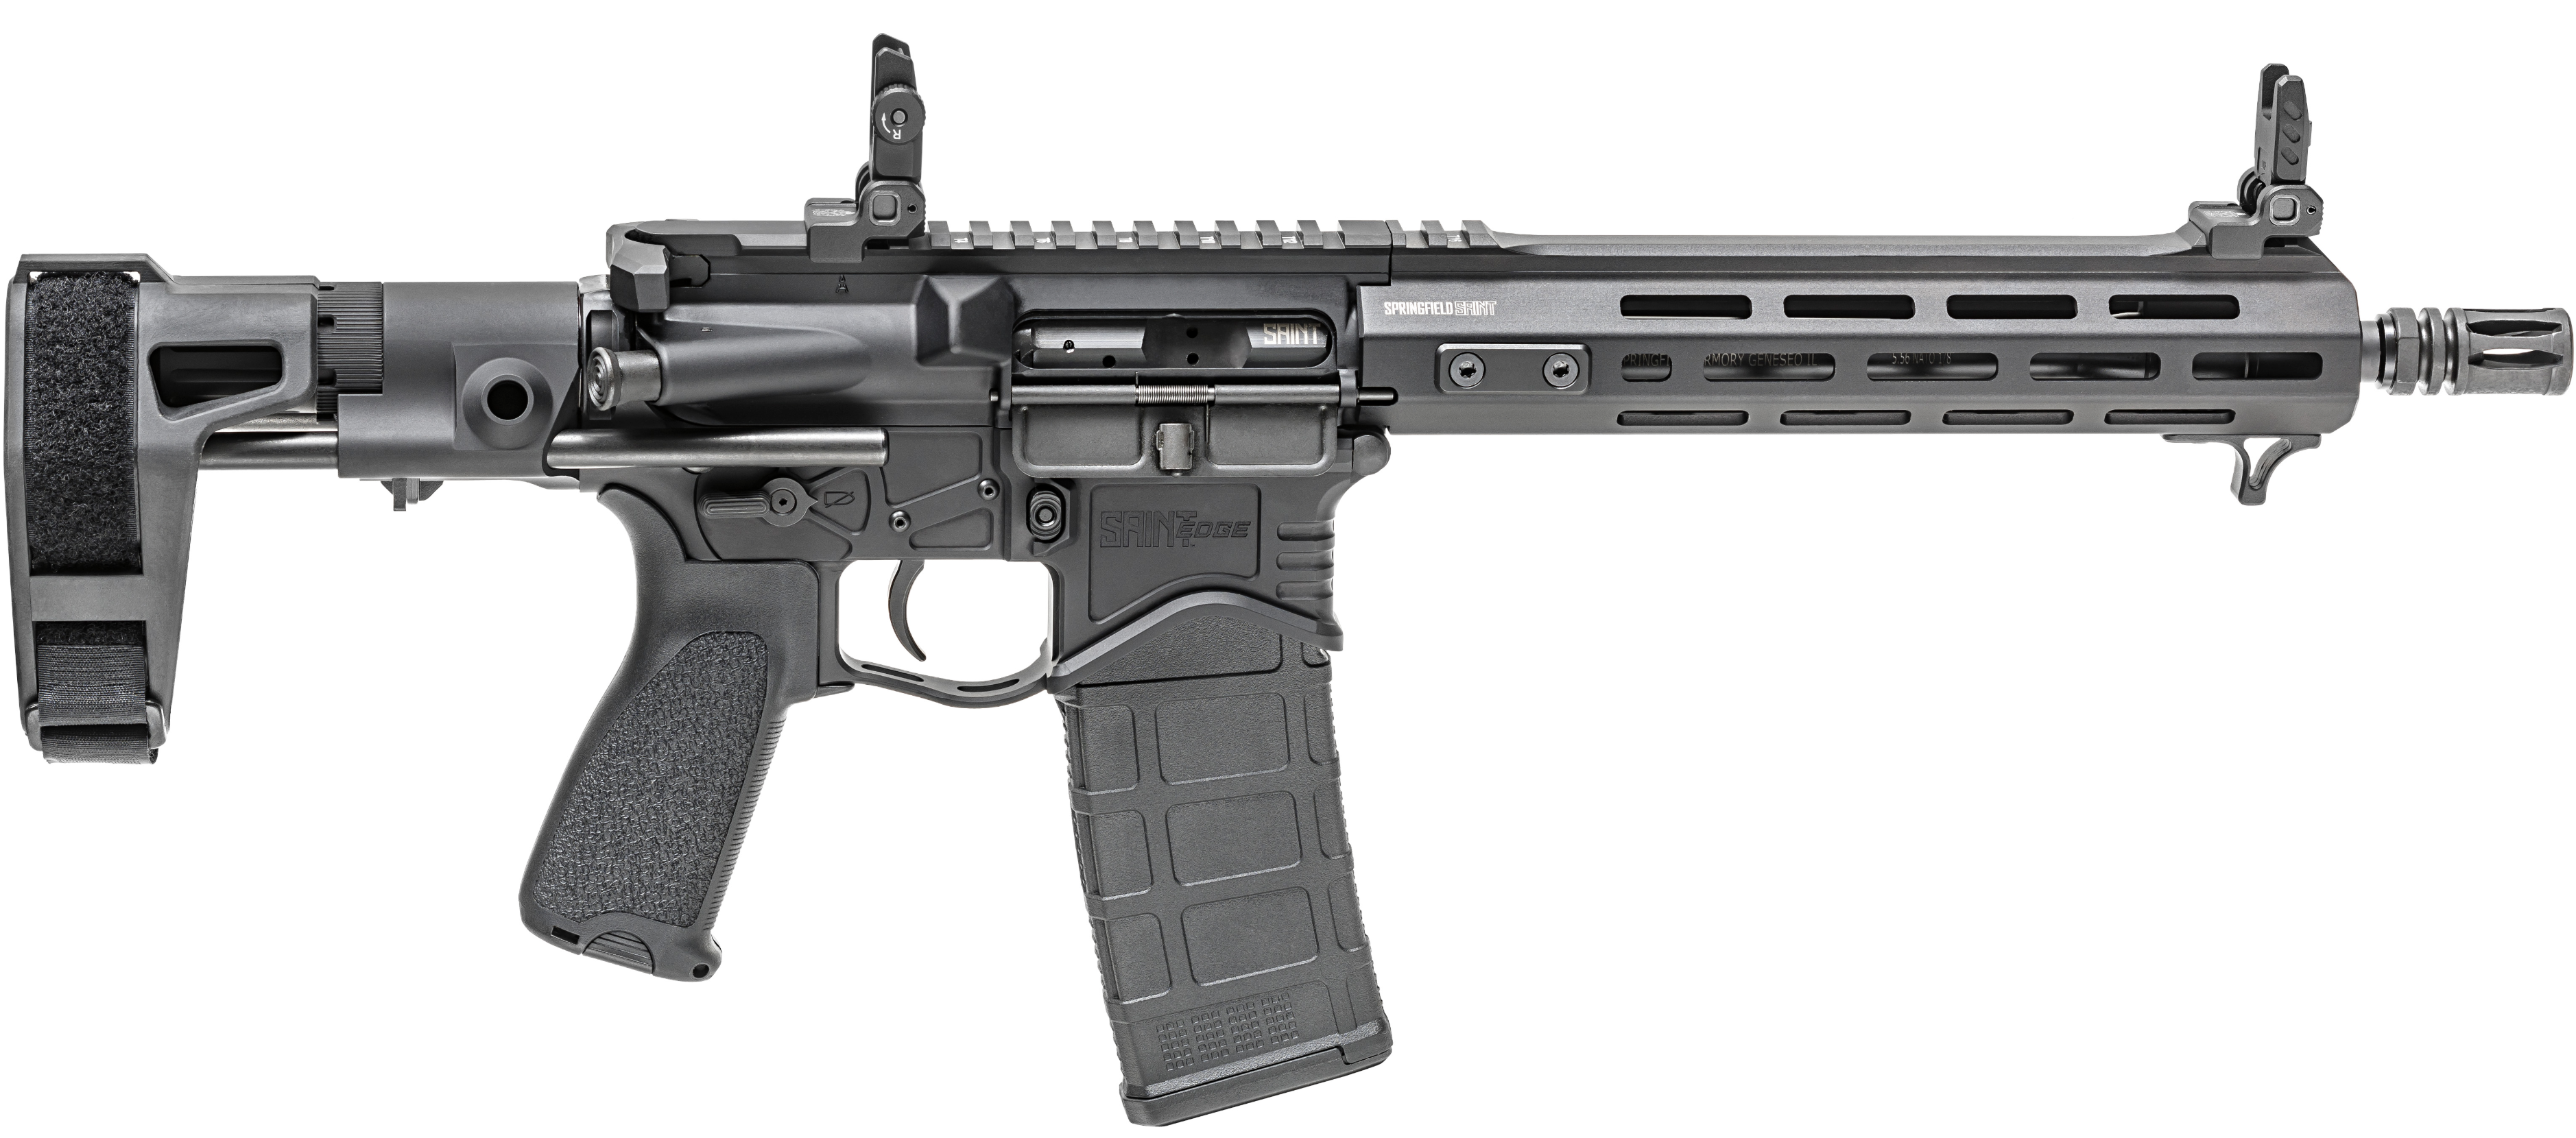 Is This the Ultimate AR-15 Rifle of All Time?